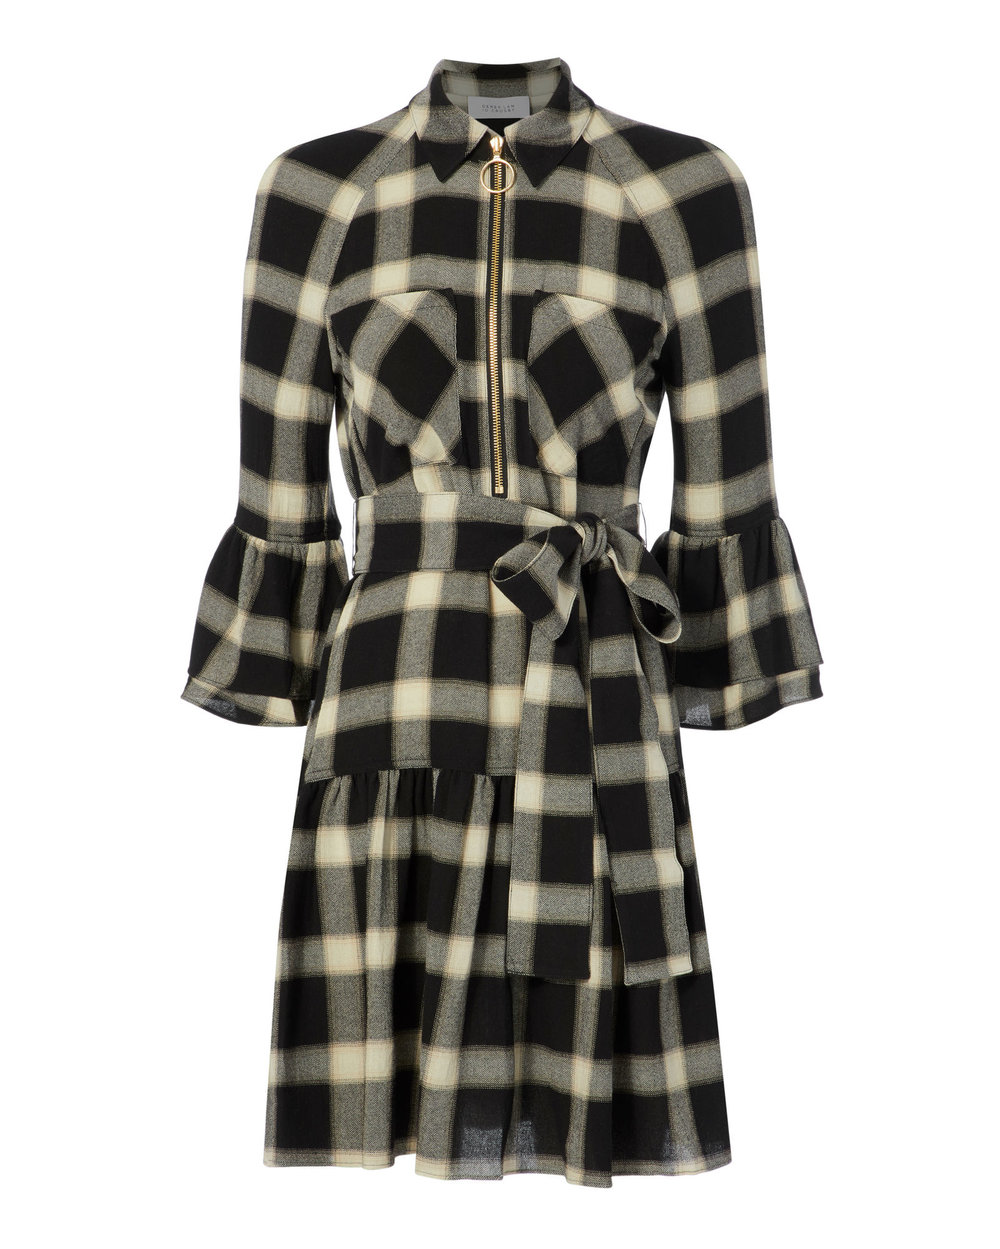 black + white plaid dress